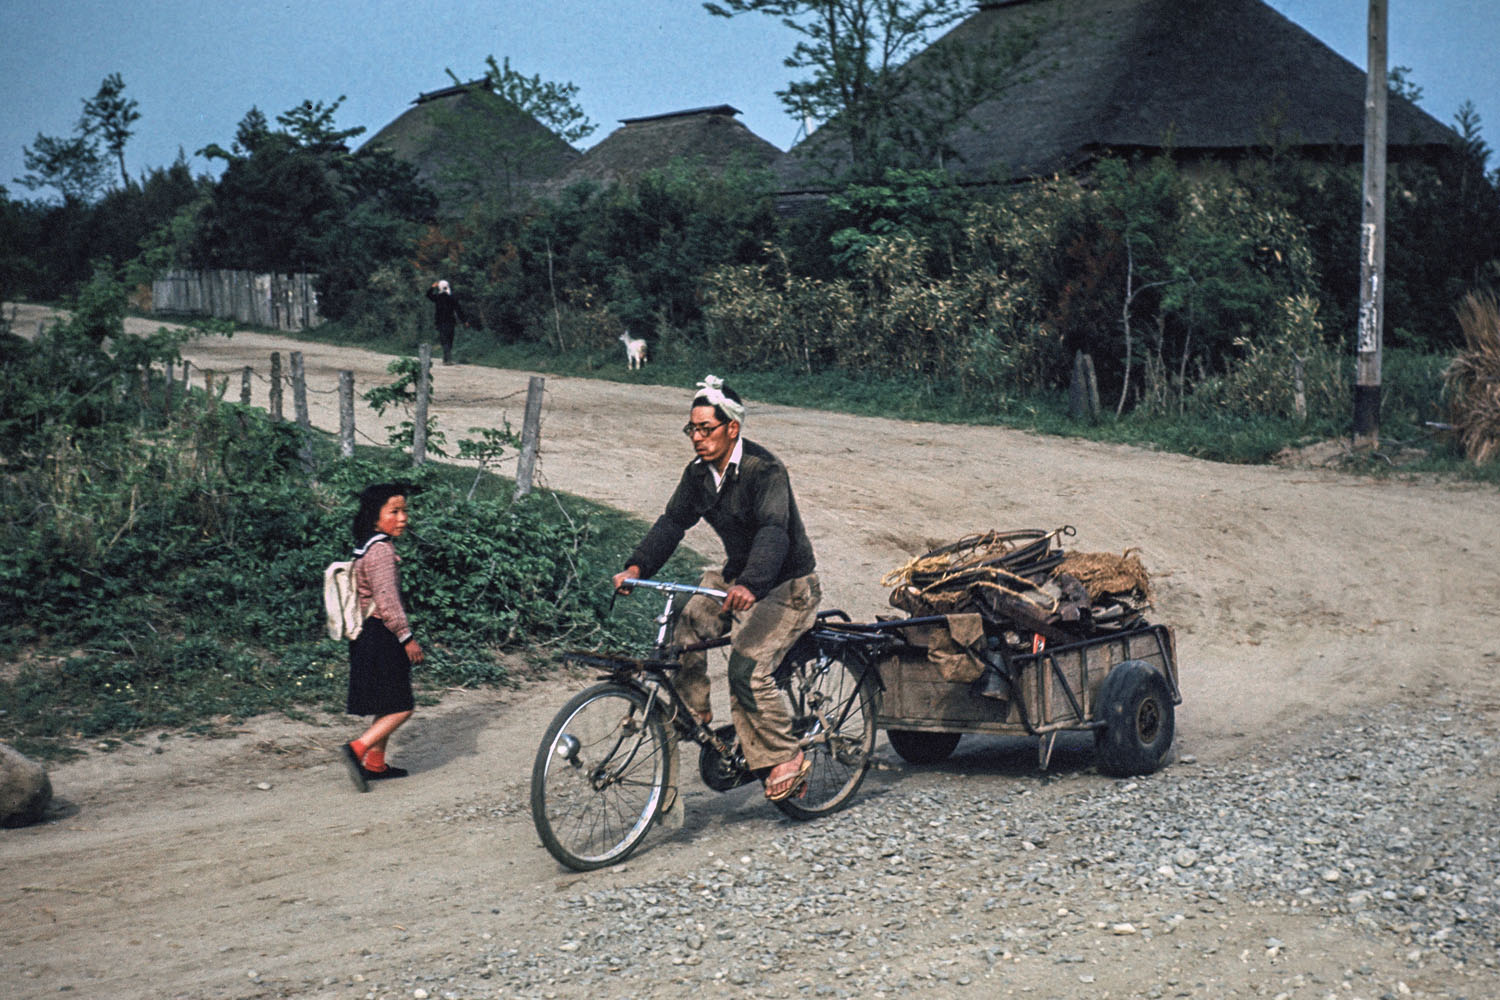 346-Man on Bicycle Pulling Cart